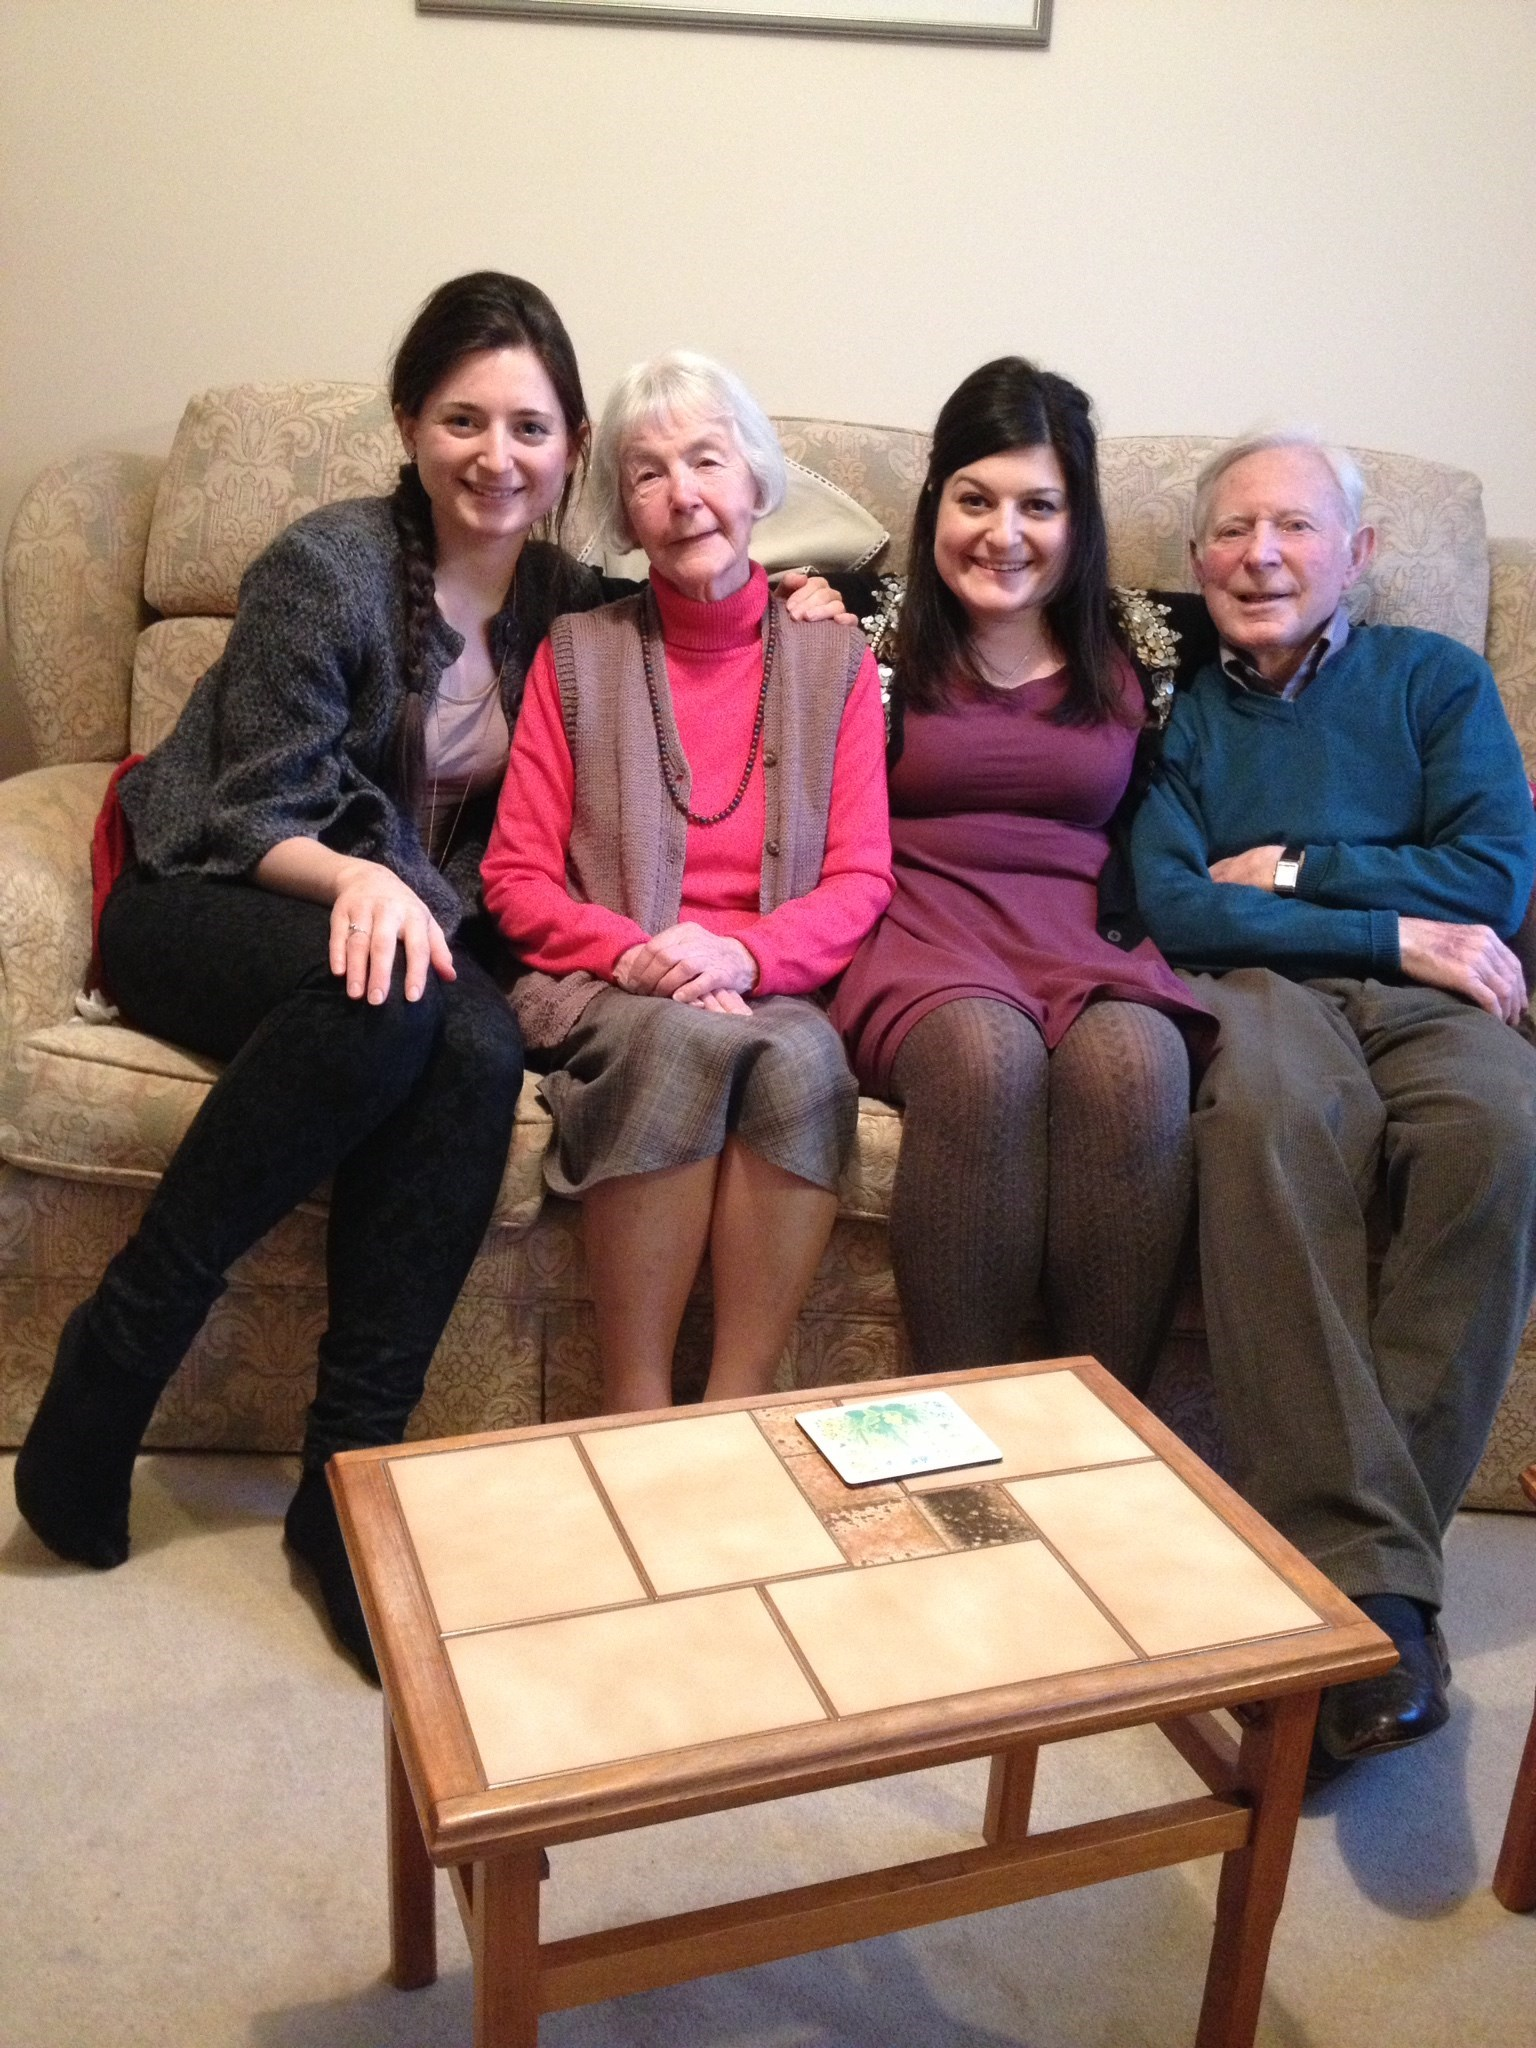 Sam , Lucille and Moira with Sorme and Pome - I'm taking the picture !